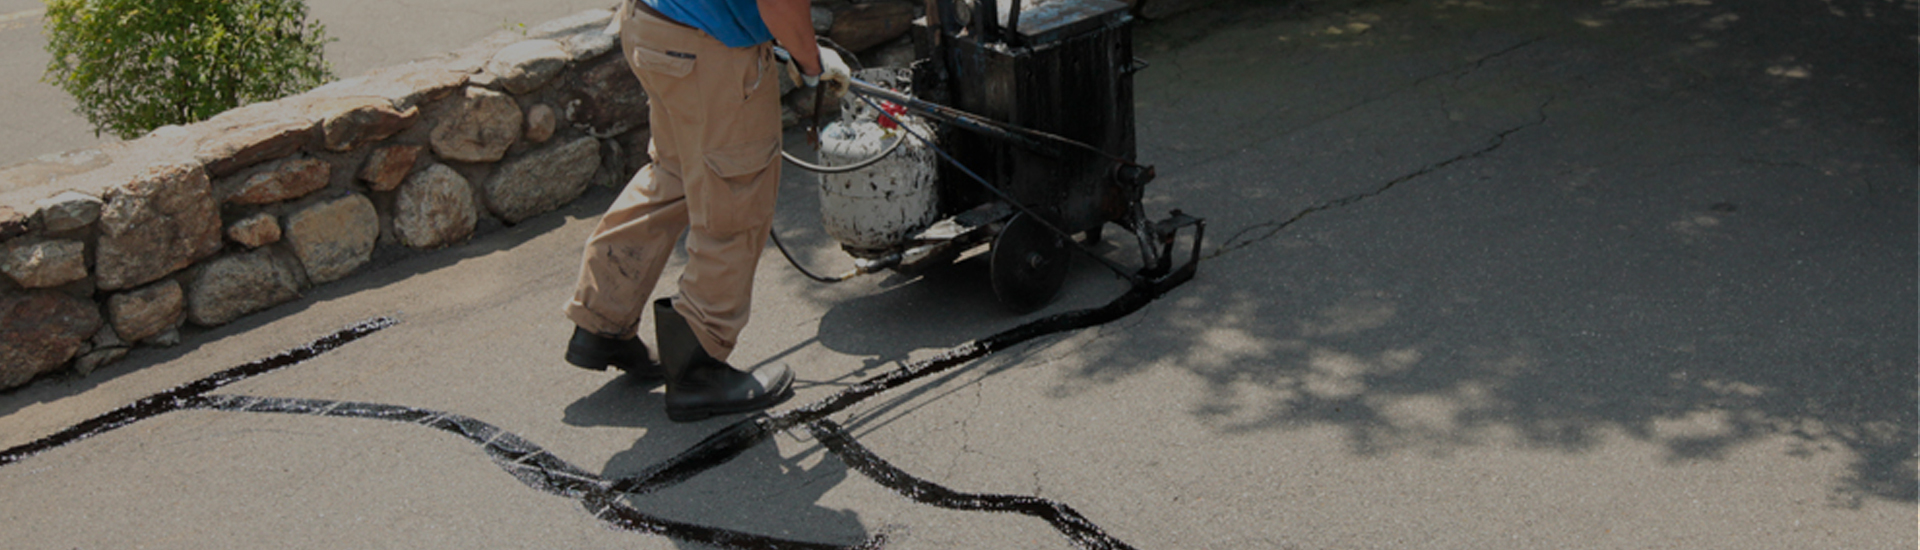 Cracks are repaired using hot, liquified rubber